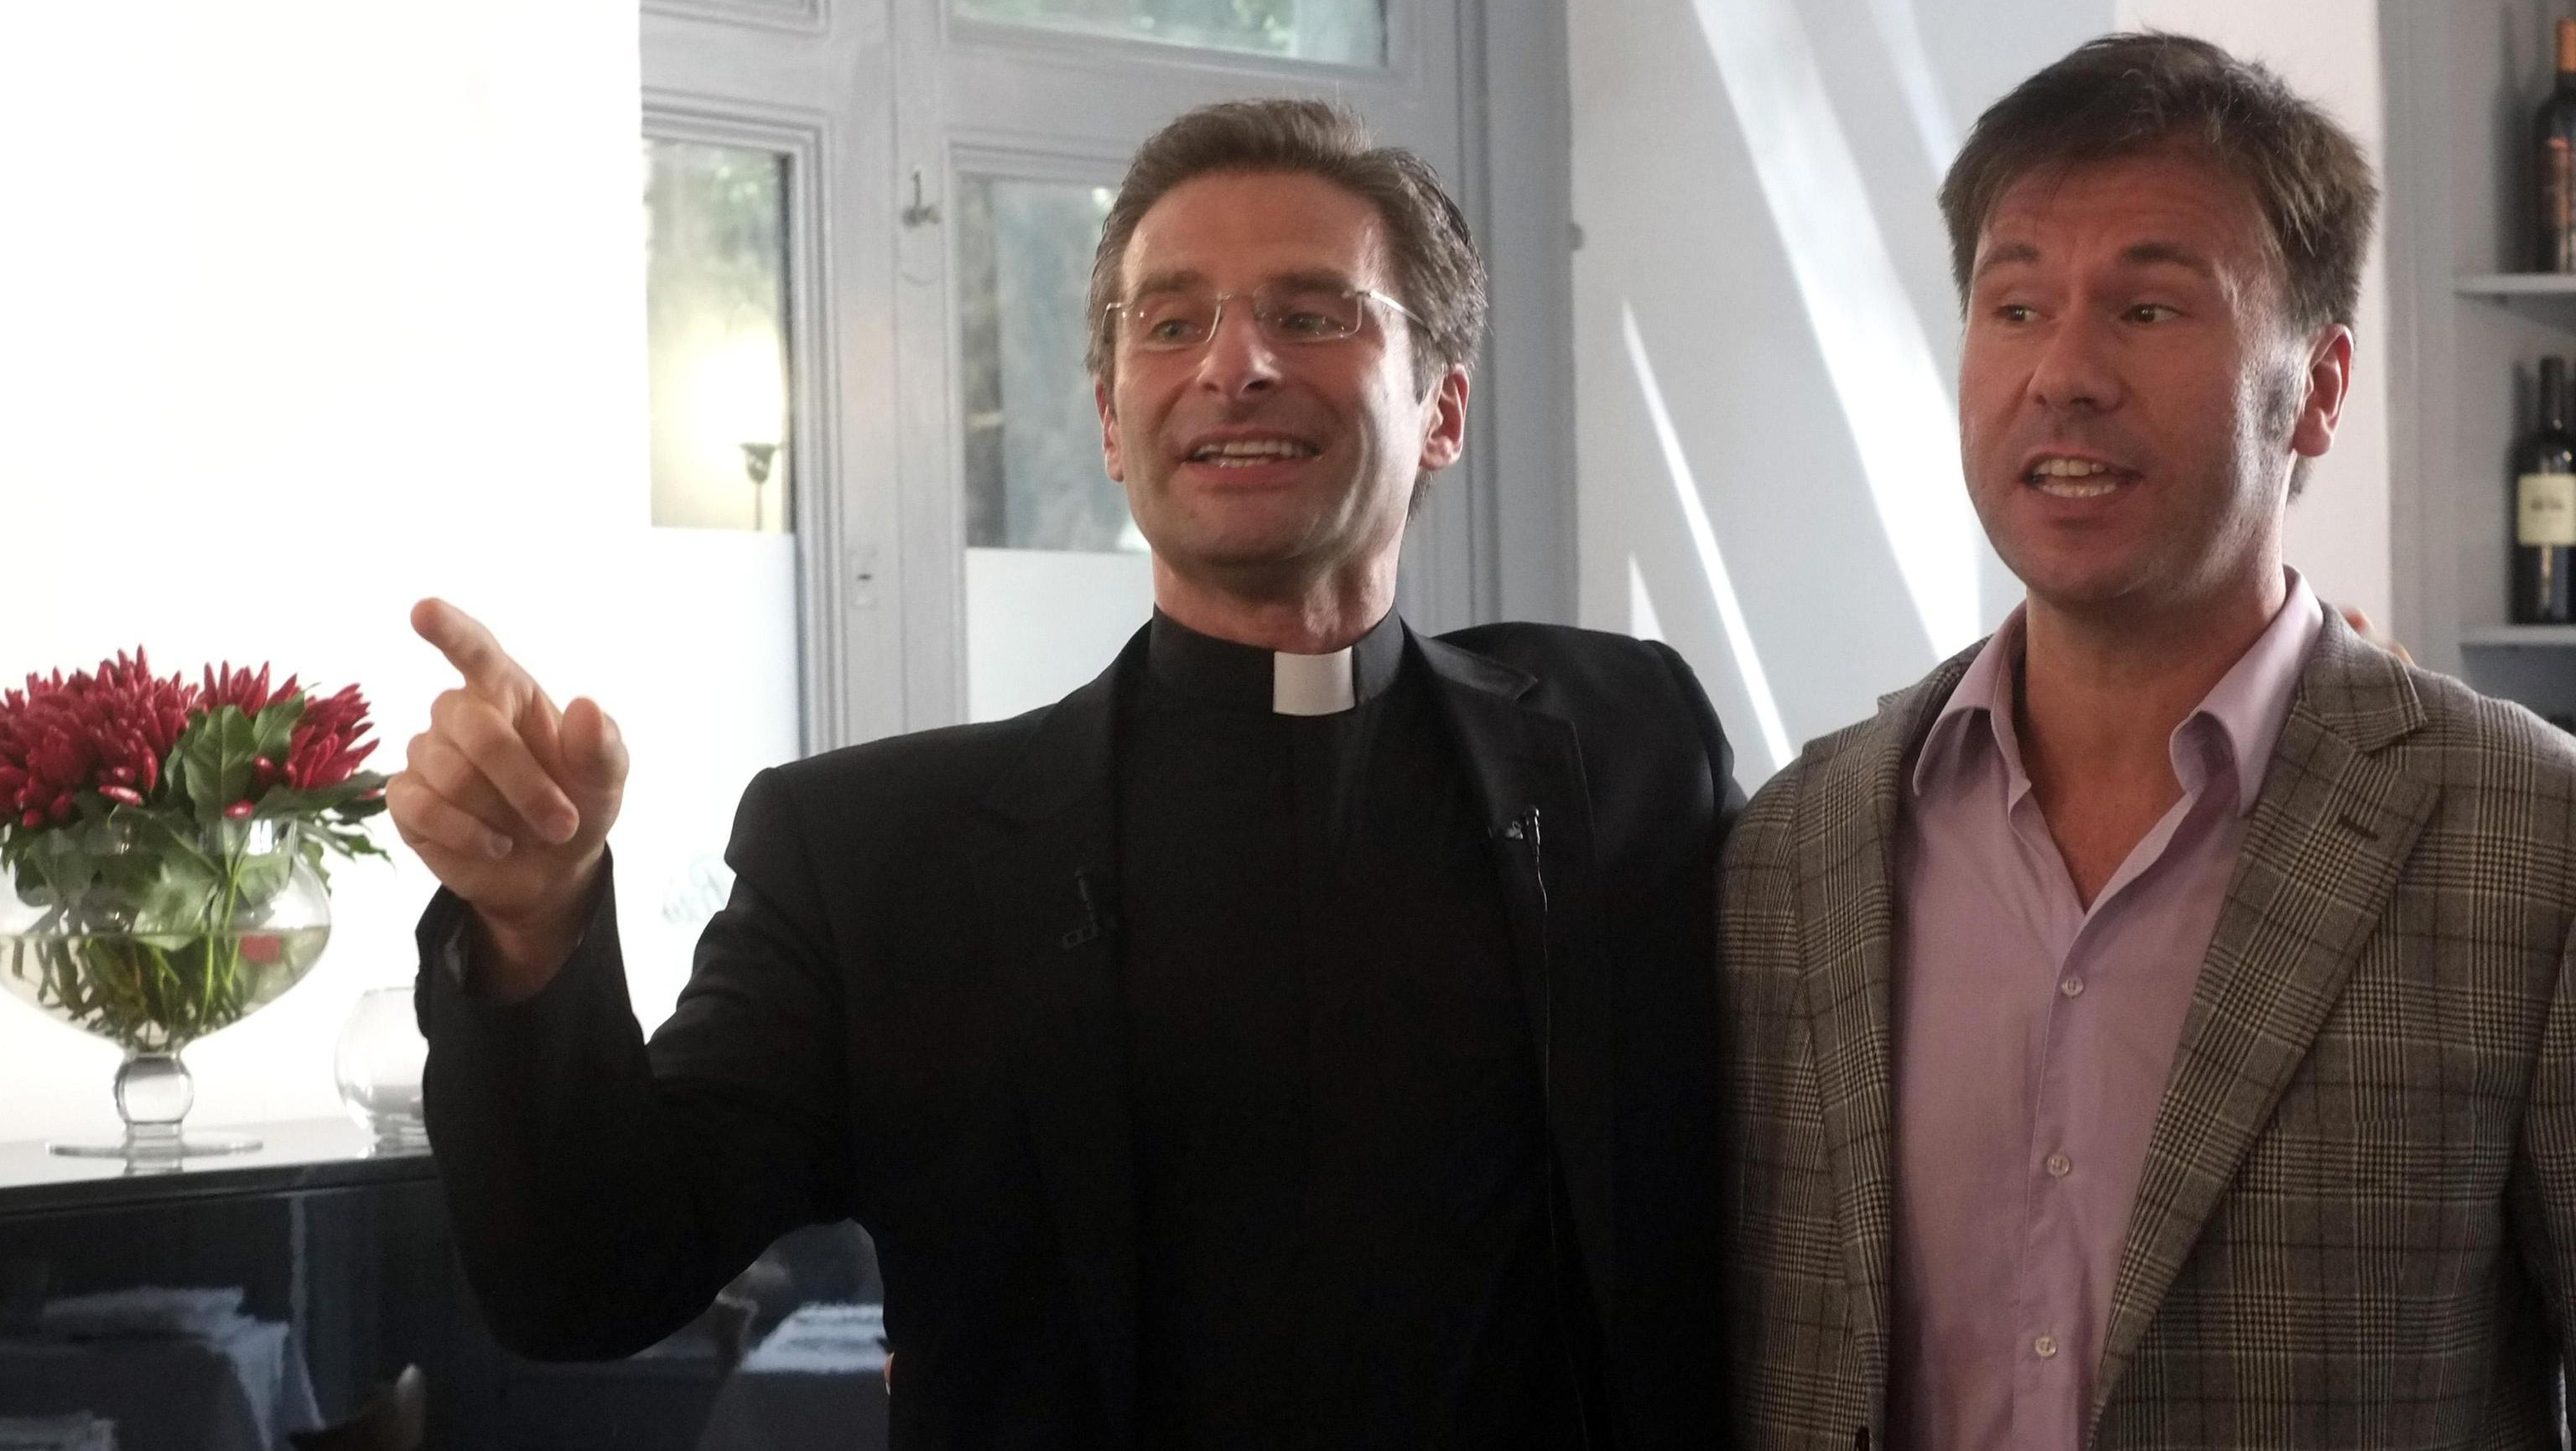 Vatican Fires Polish Priest After He Comes Out as Gay to Reporters